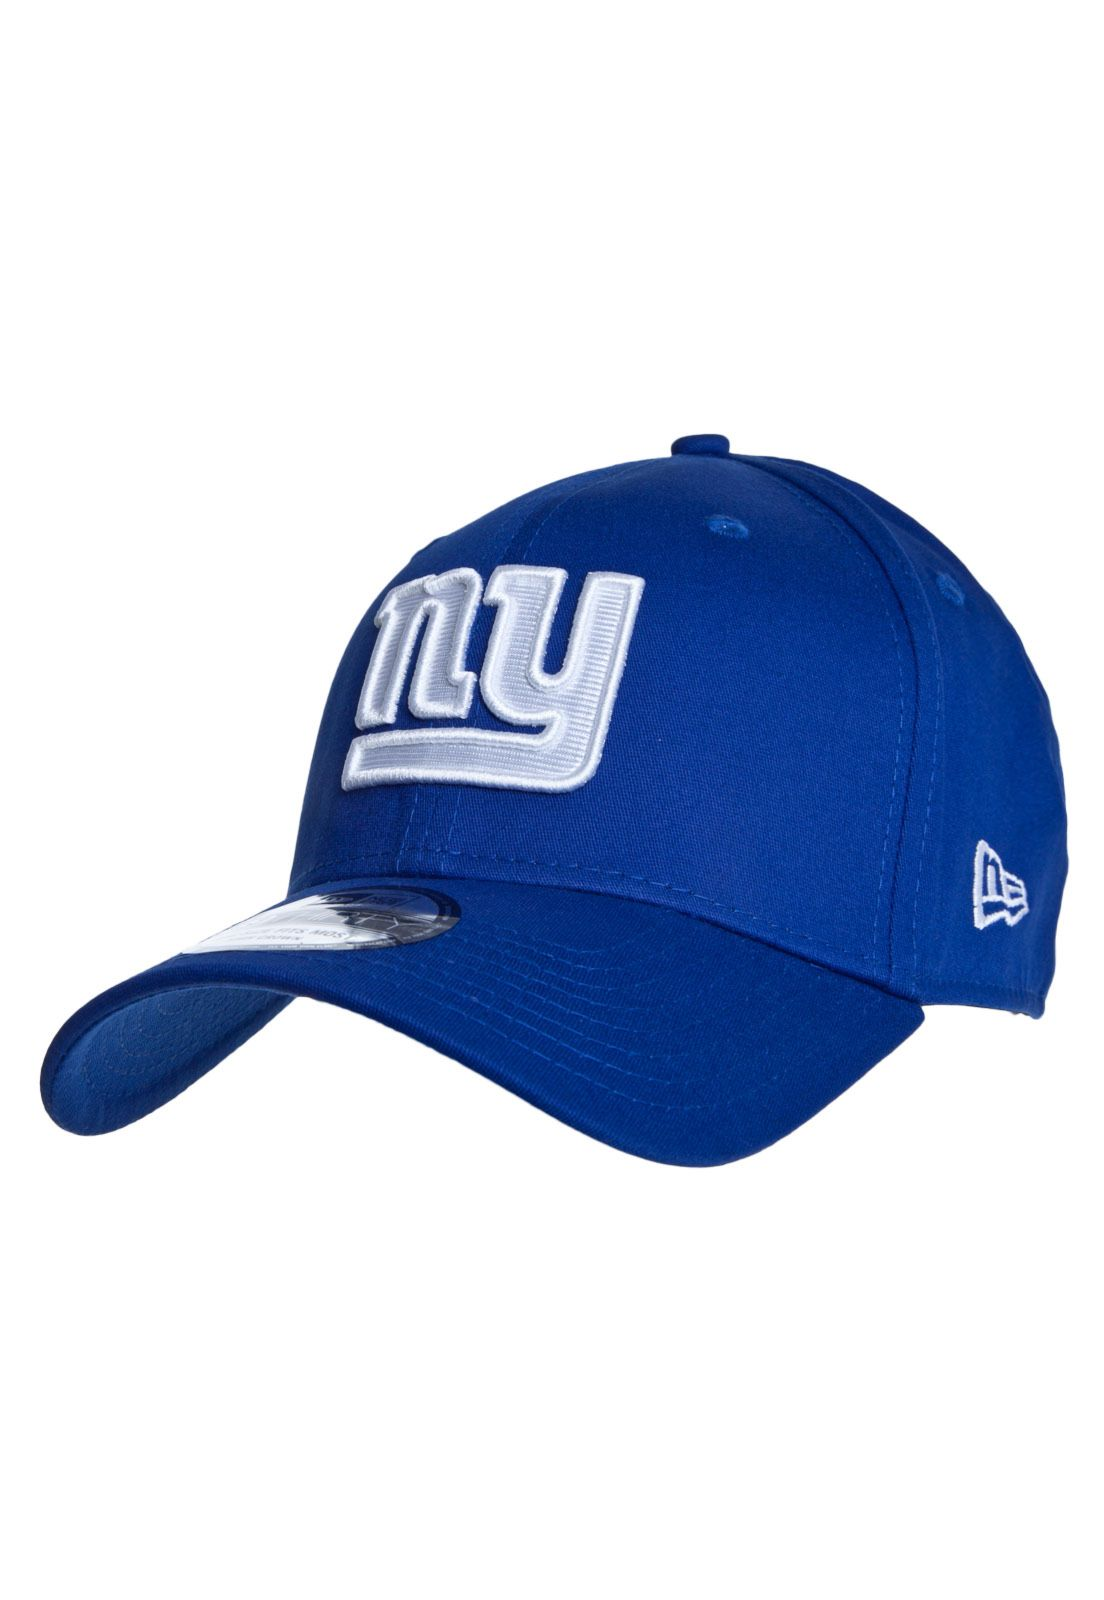 Boné New Era Ever New York Giants Azul - Marca New Era 9097a5d9d82